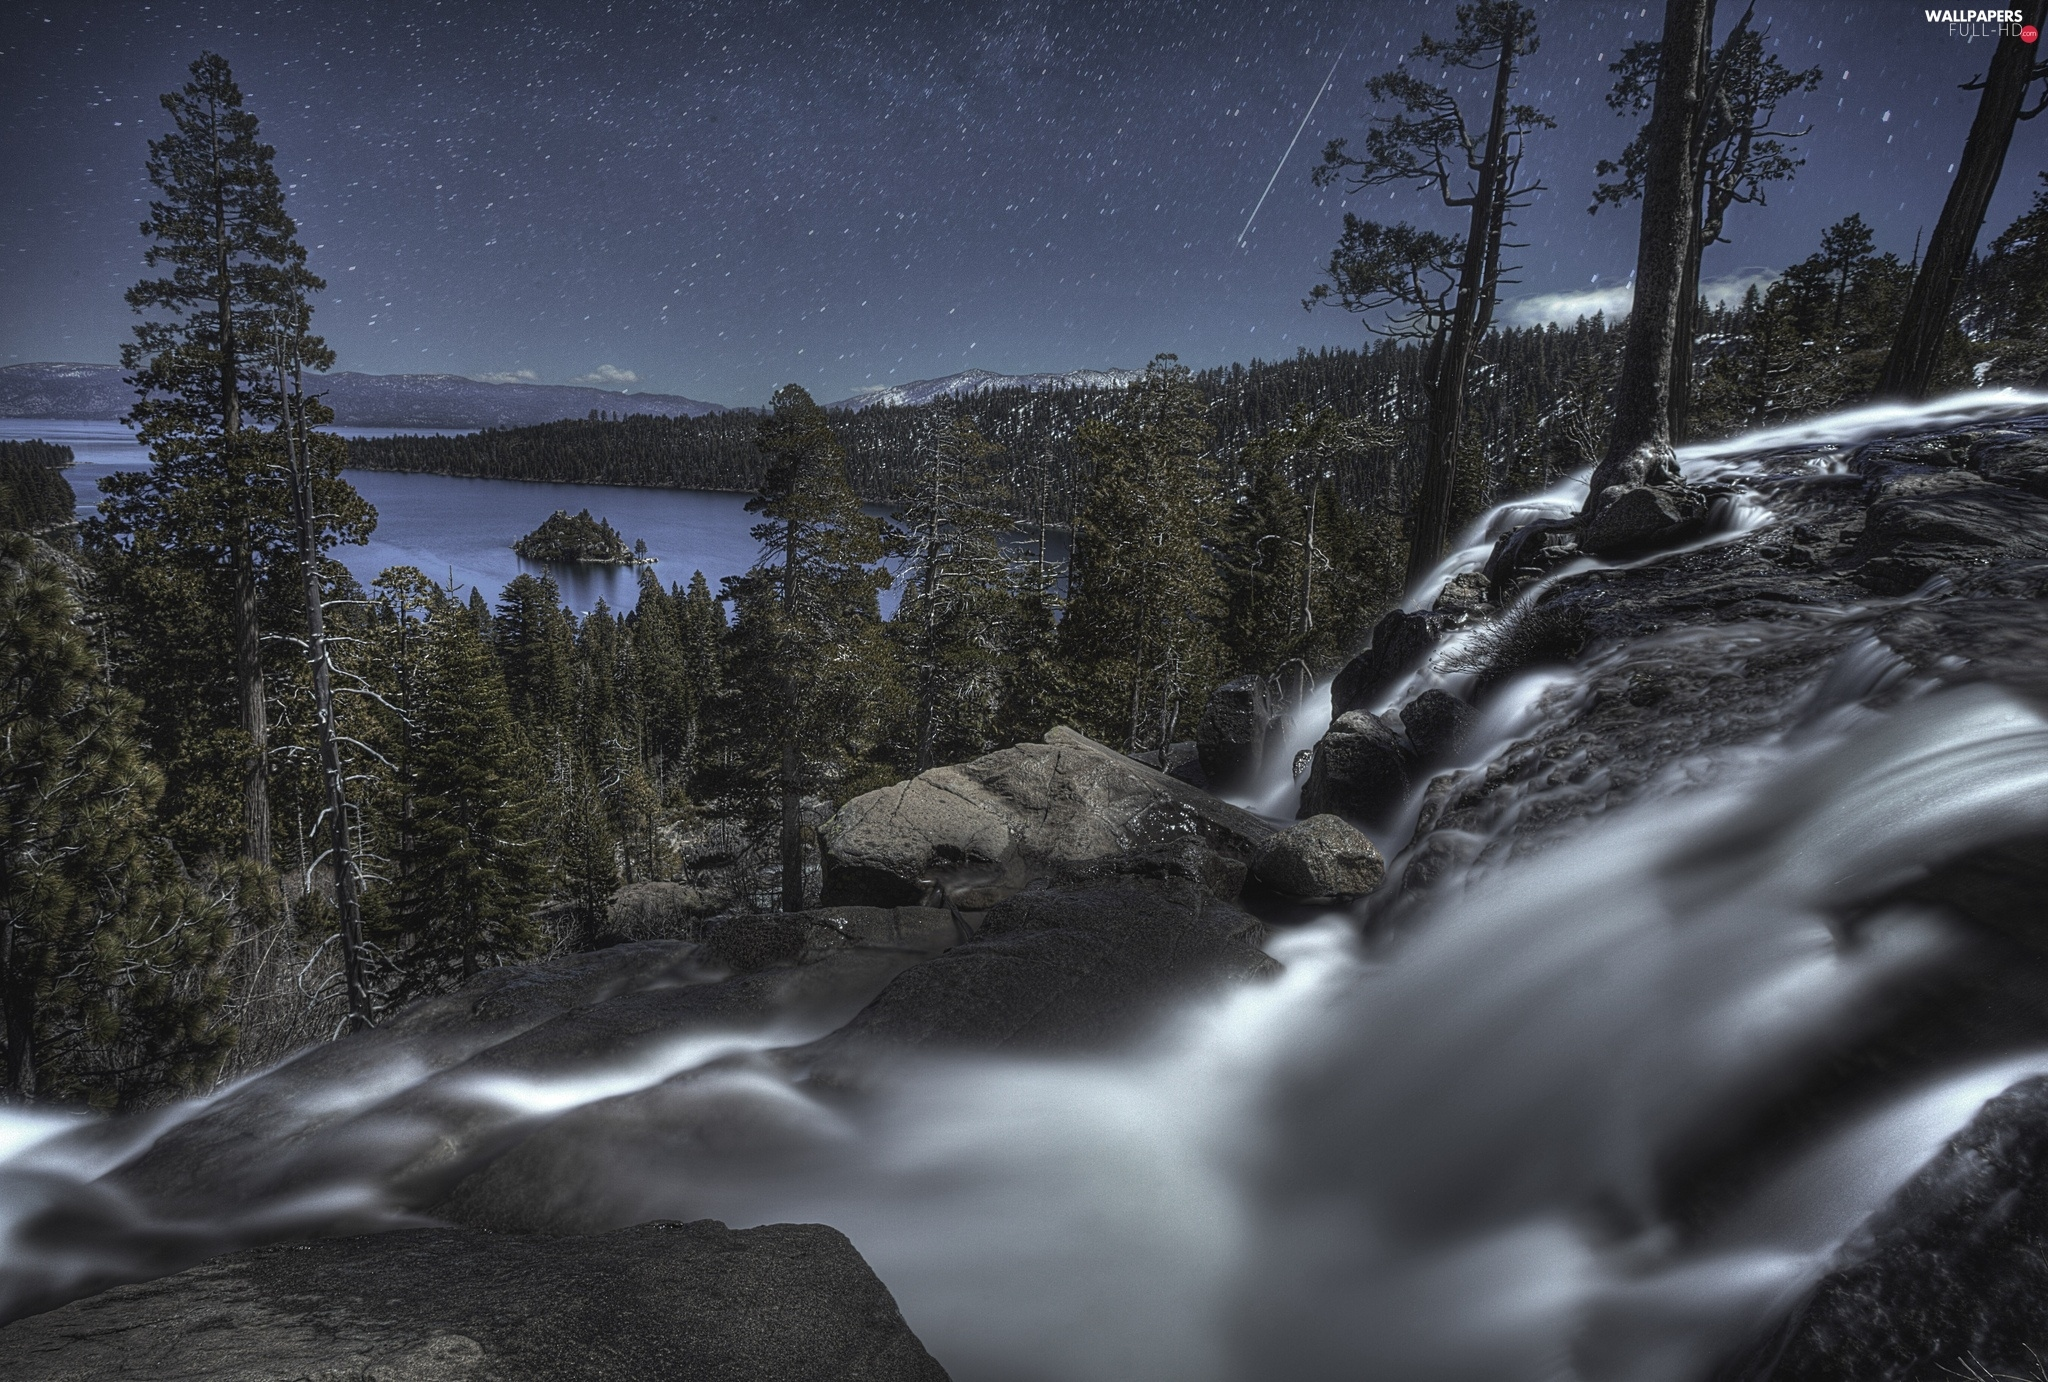 Night, lake, waterfall, forest